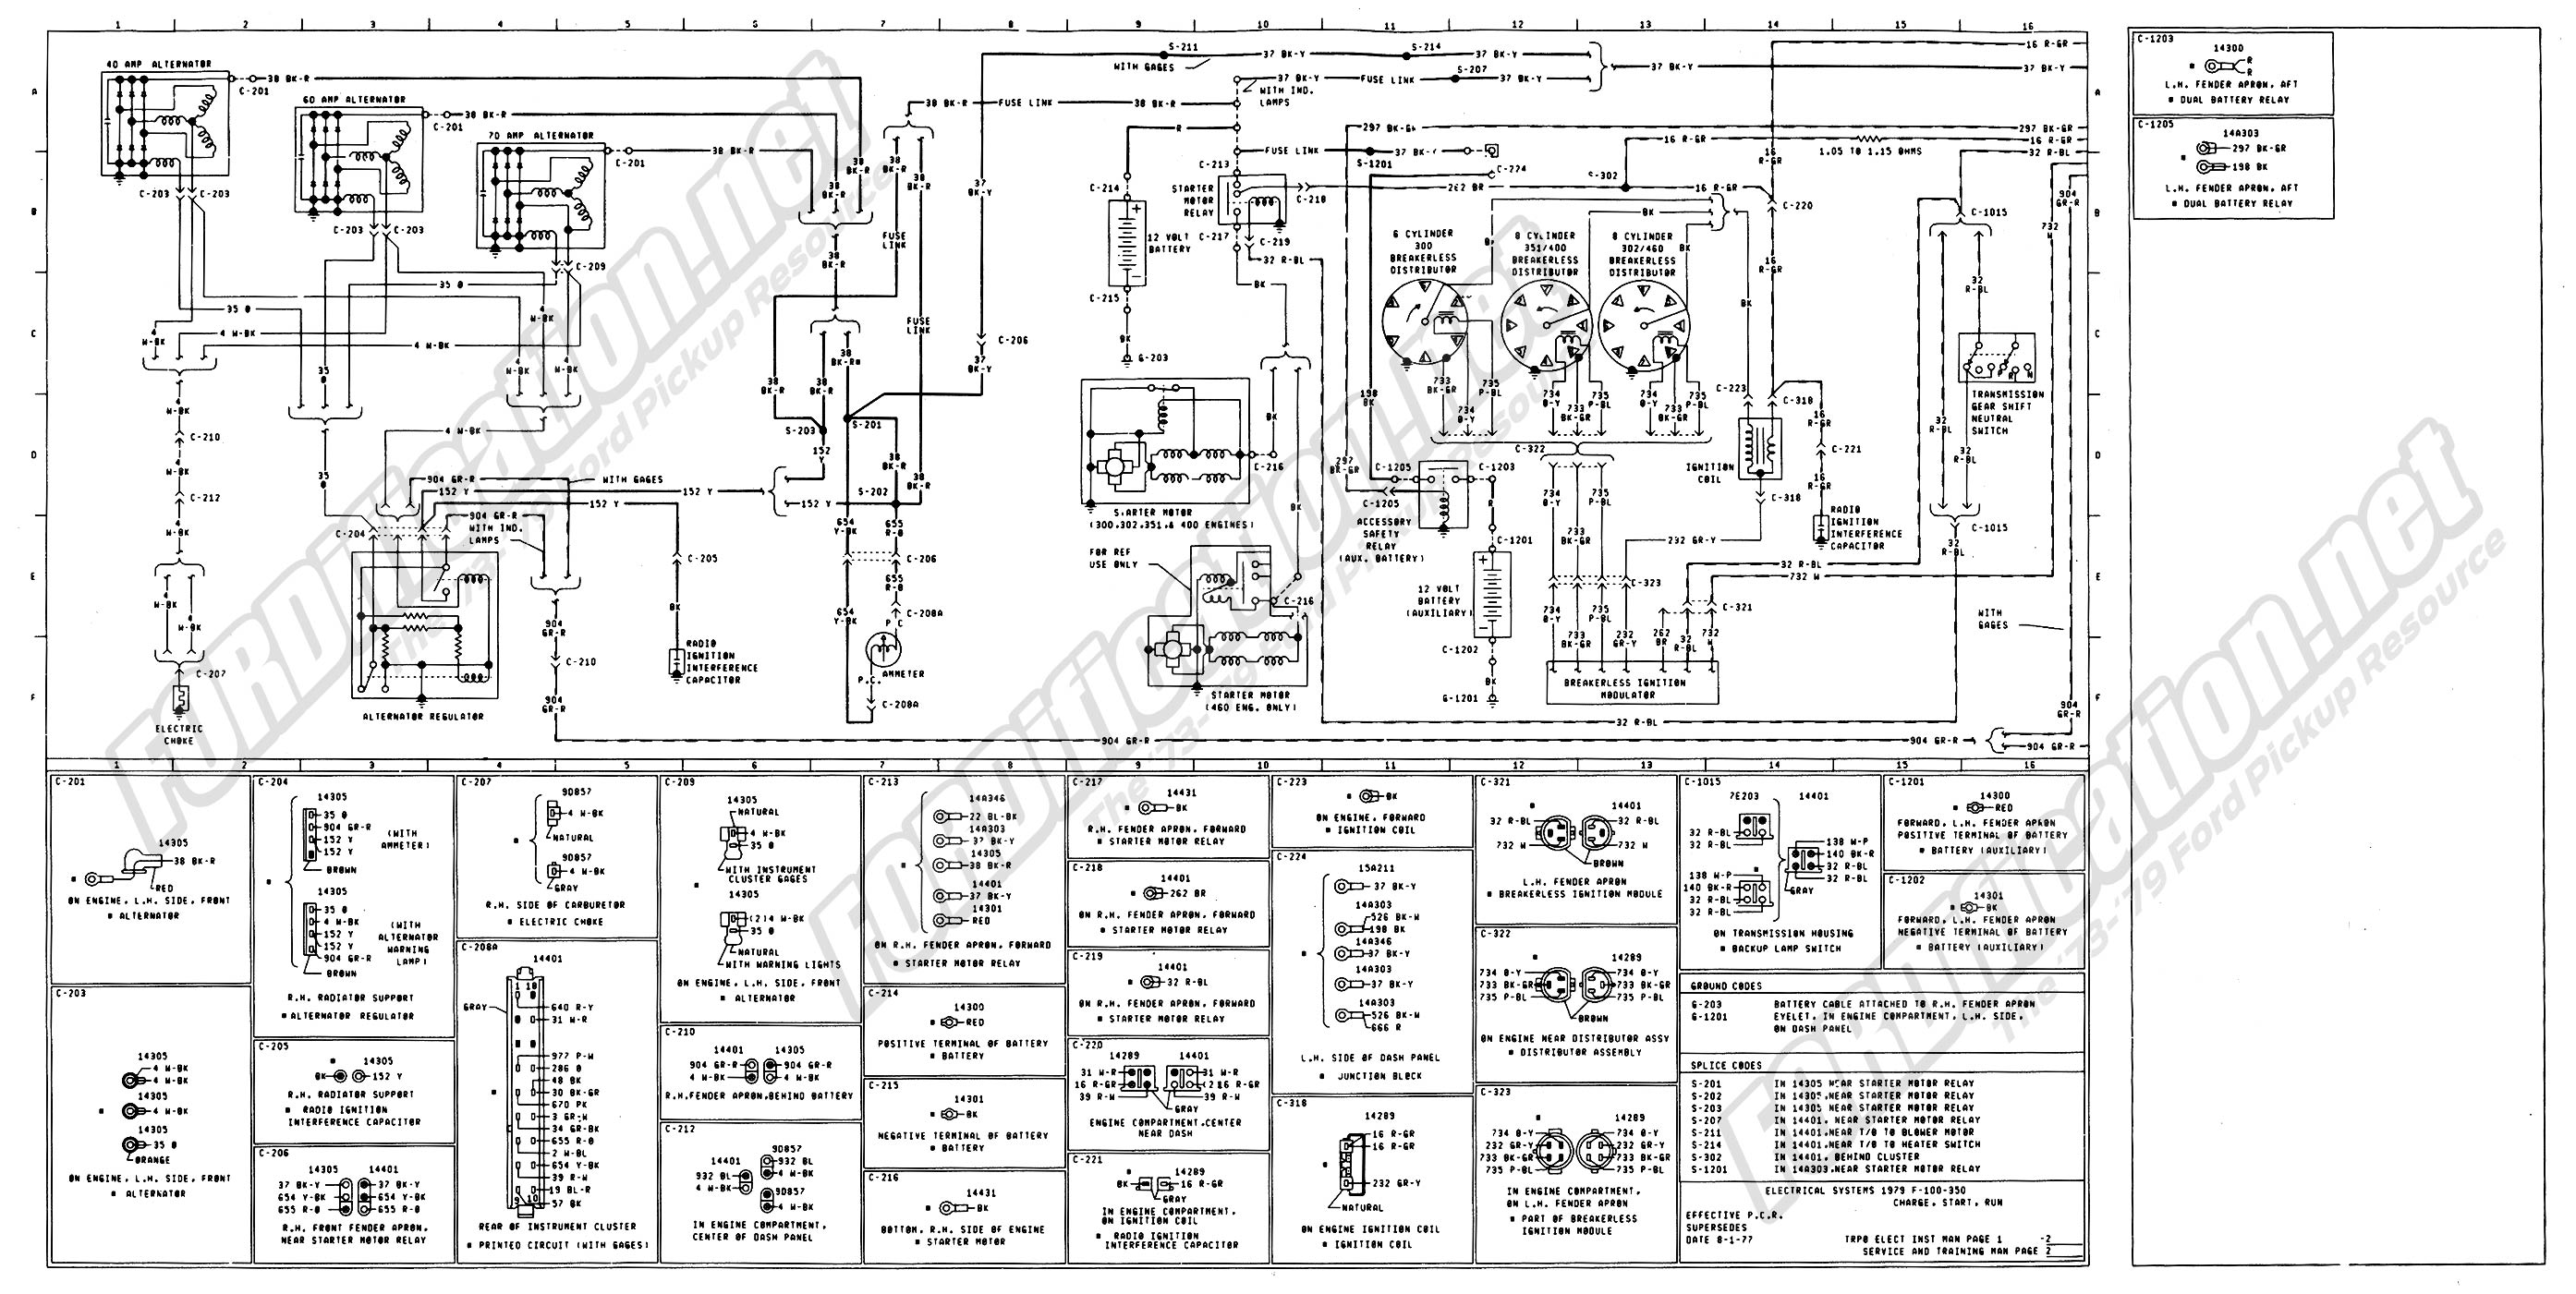 1973 1979 ford truck wiring diagrams schematics fordification net rh fordification net 1977 Ford F-250 1980 Ford F-250